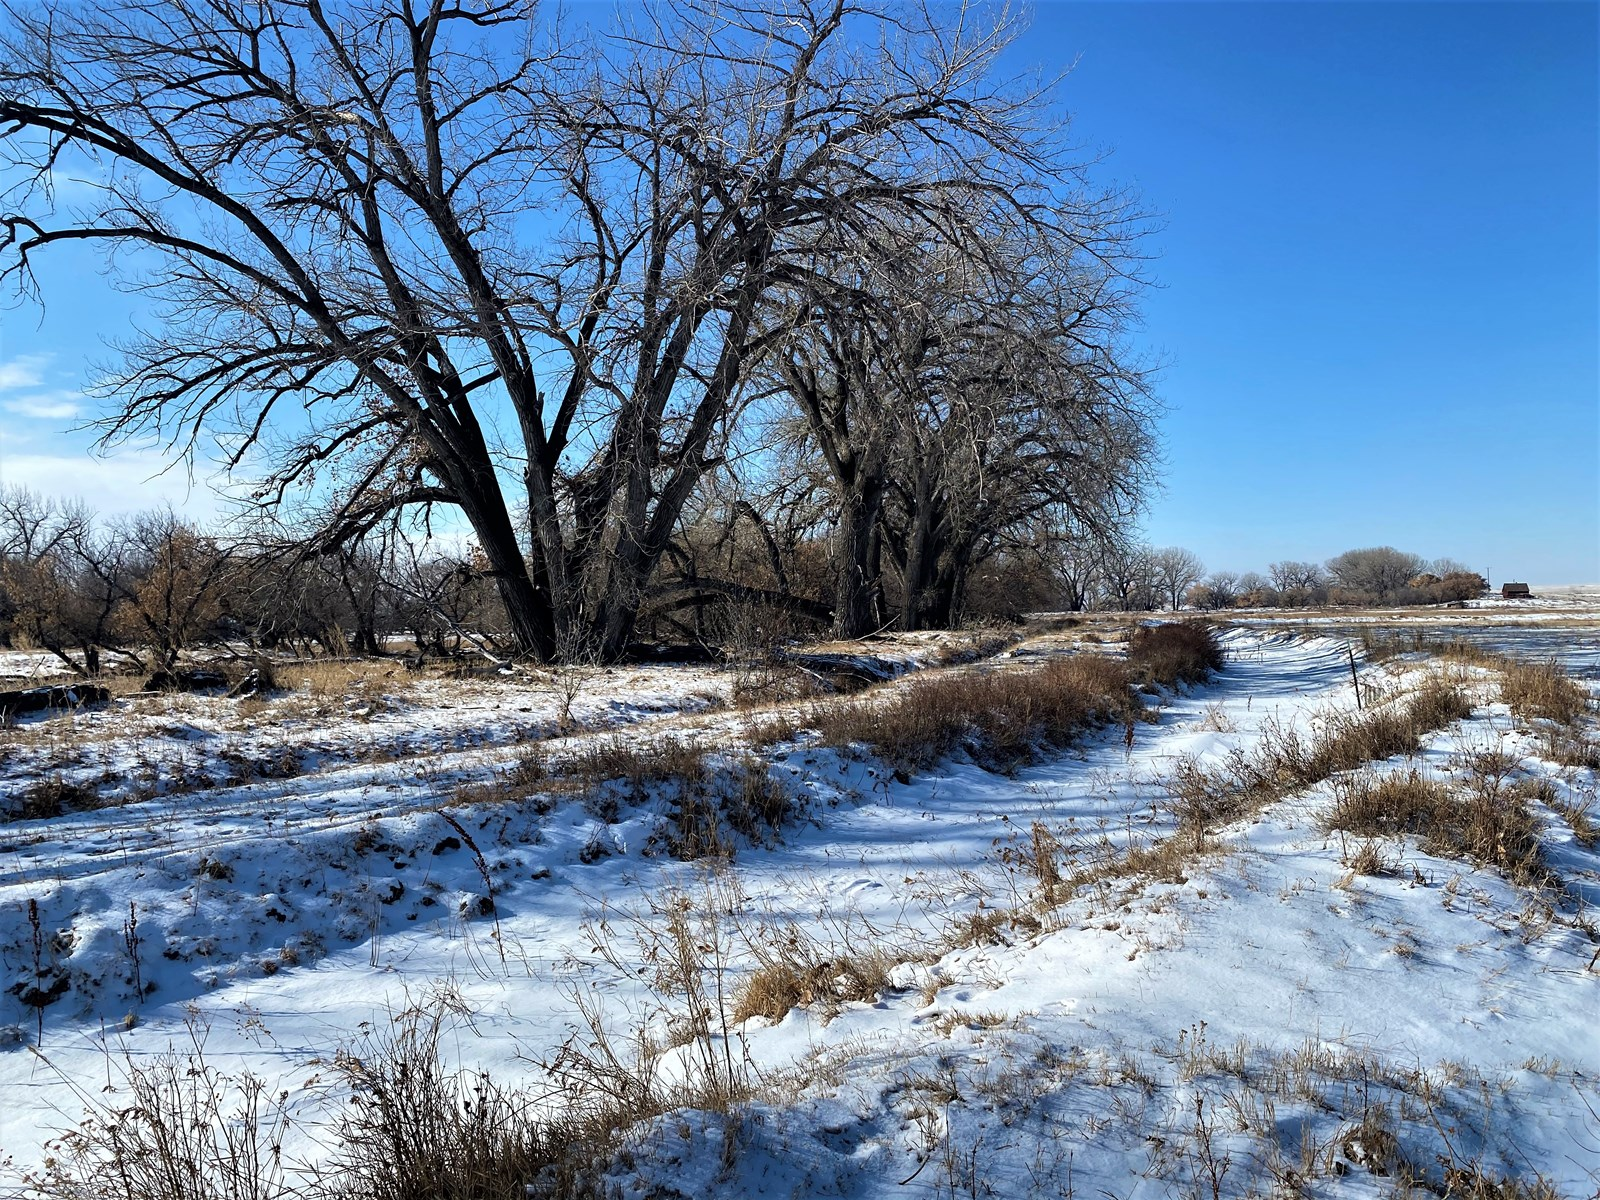 ranches for sale listing image for Historic 2n Ranch for Sale Deeded Acres with Dodson Creek